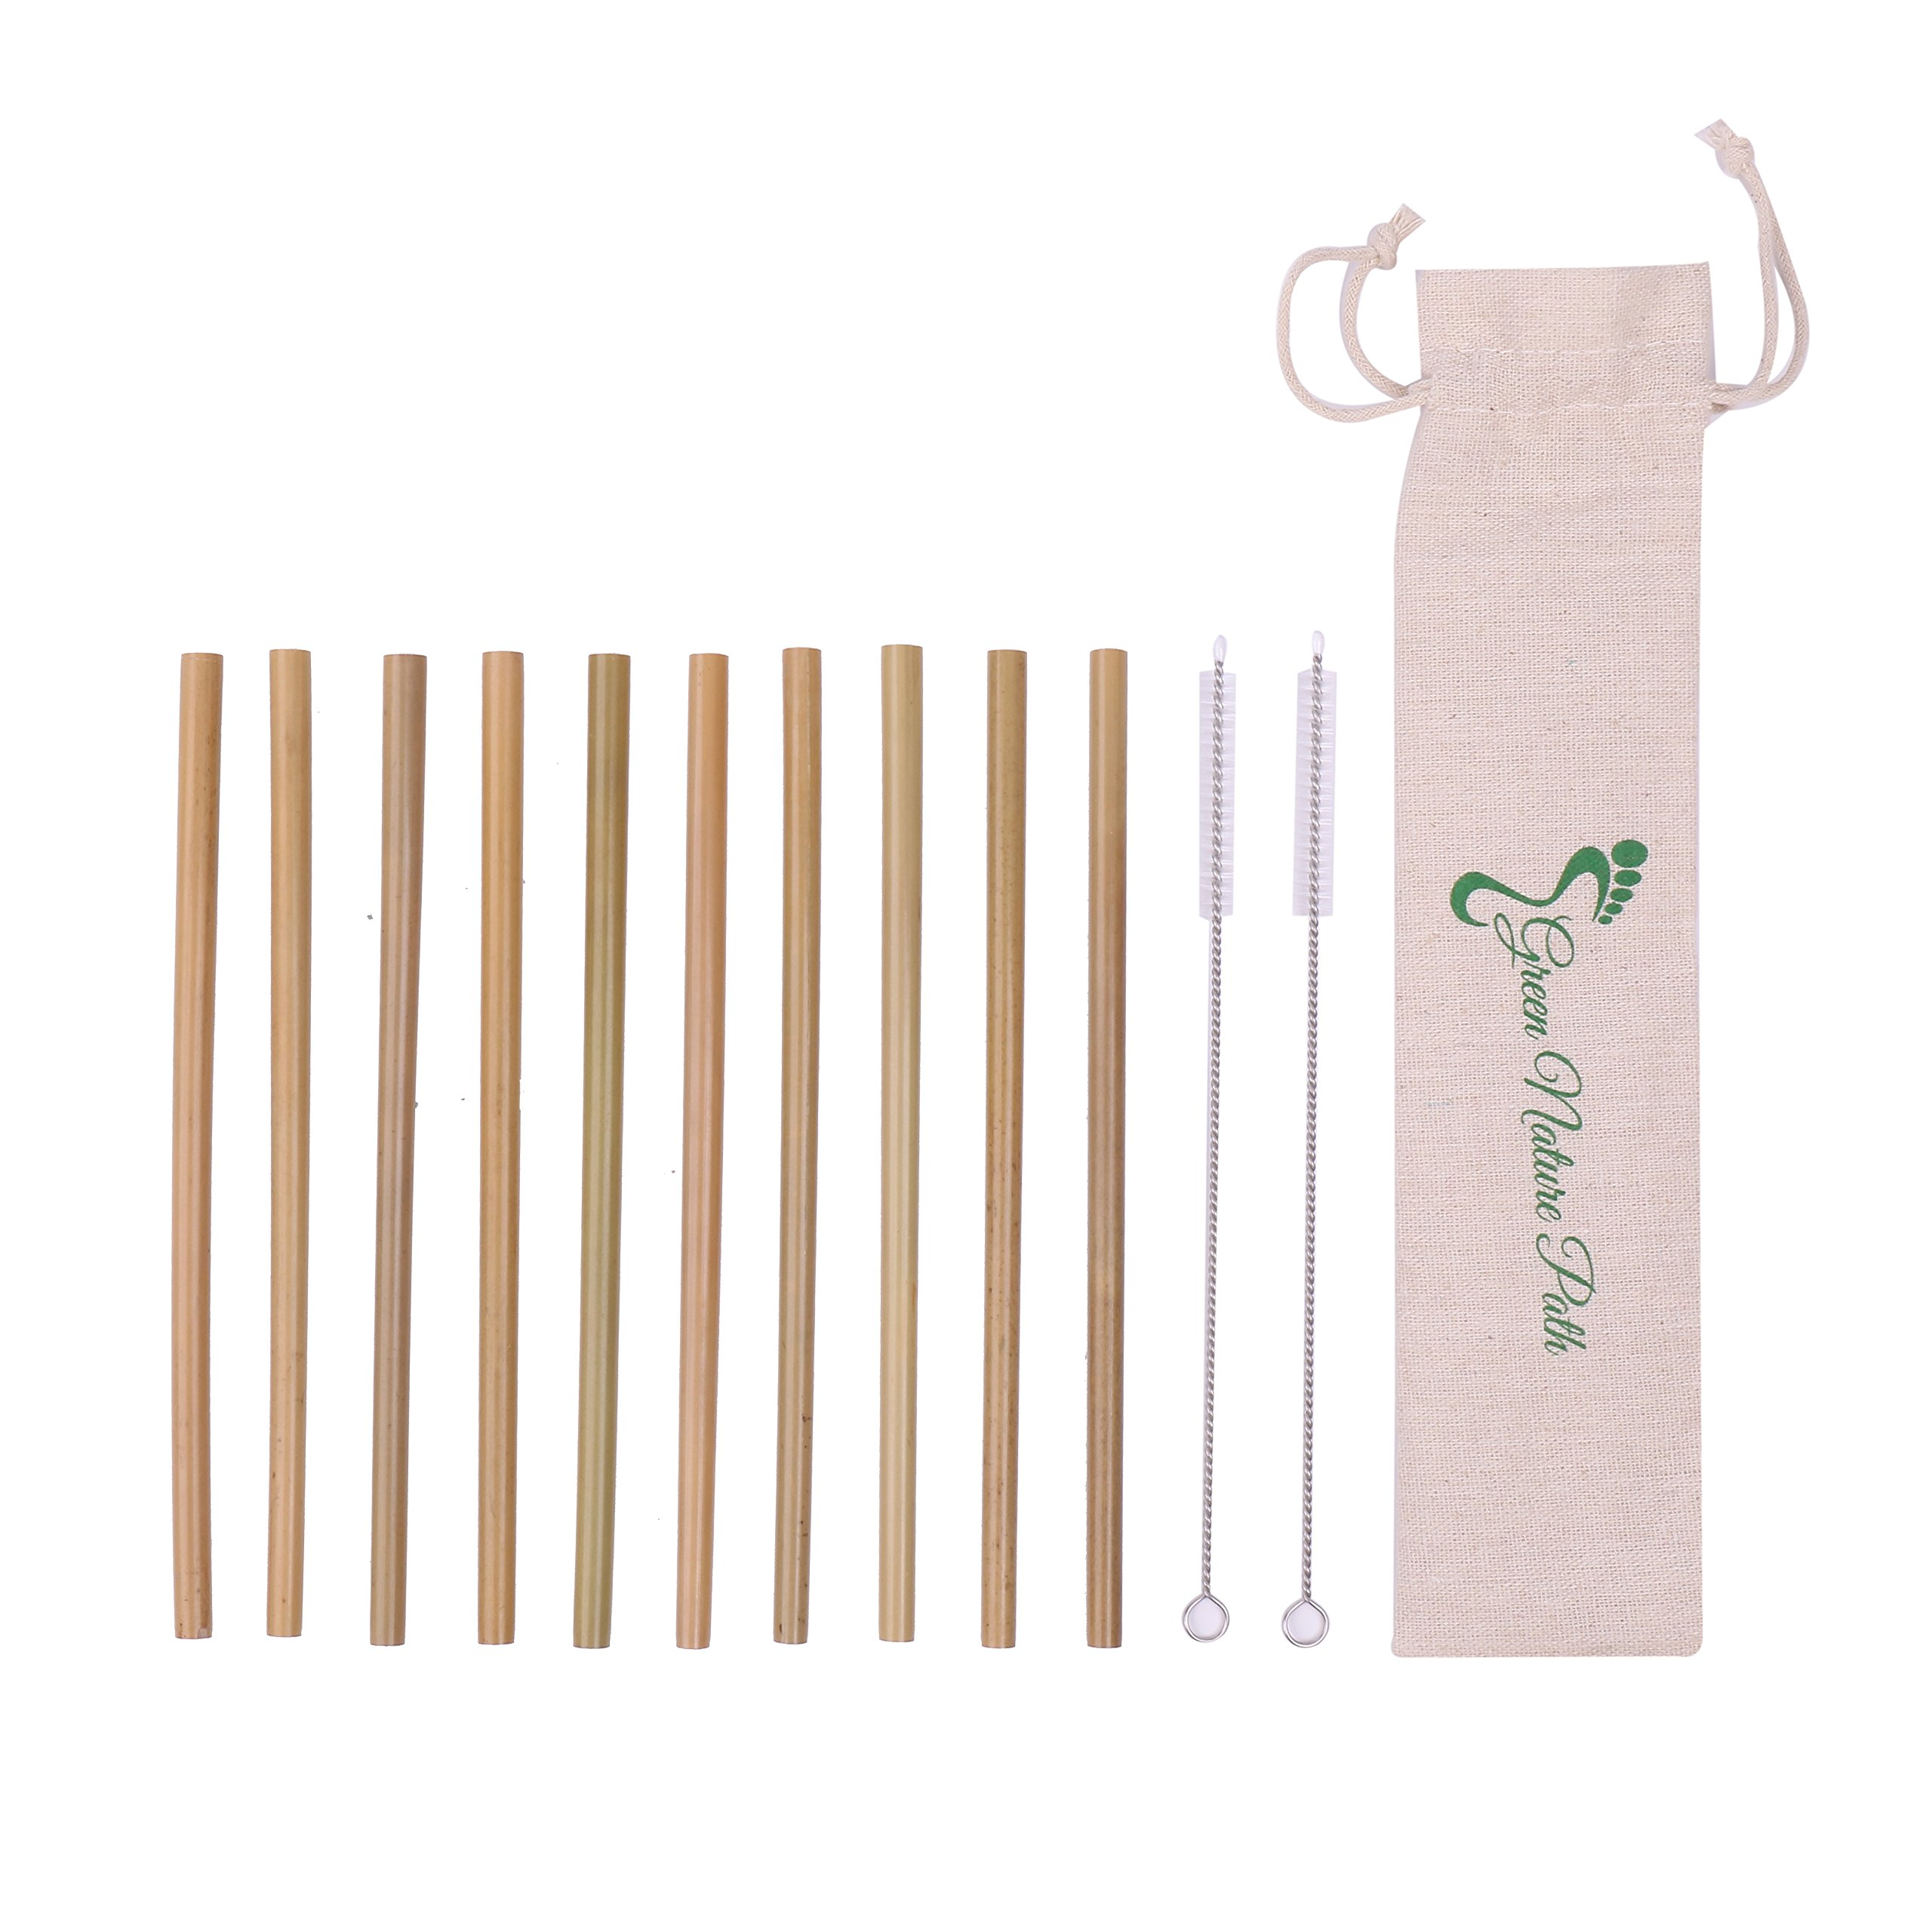 Bamboo Straws – Set Of 10 Reusable Straws, 2 Cleaning Brushes & Linen Storage Bag – Eco-Friendly Dishwasher Safe Biodegradable Natural Organic Bamboo Straws For Cold Drinks & Hot Beverages